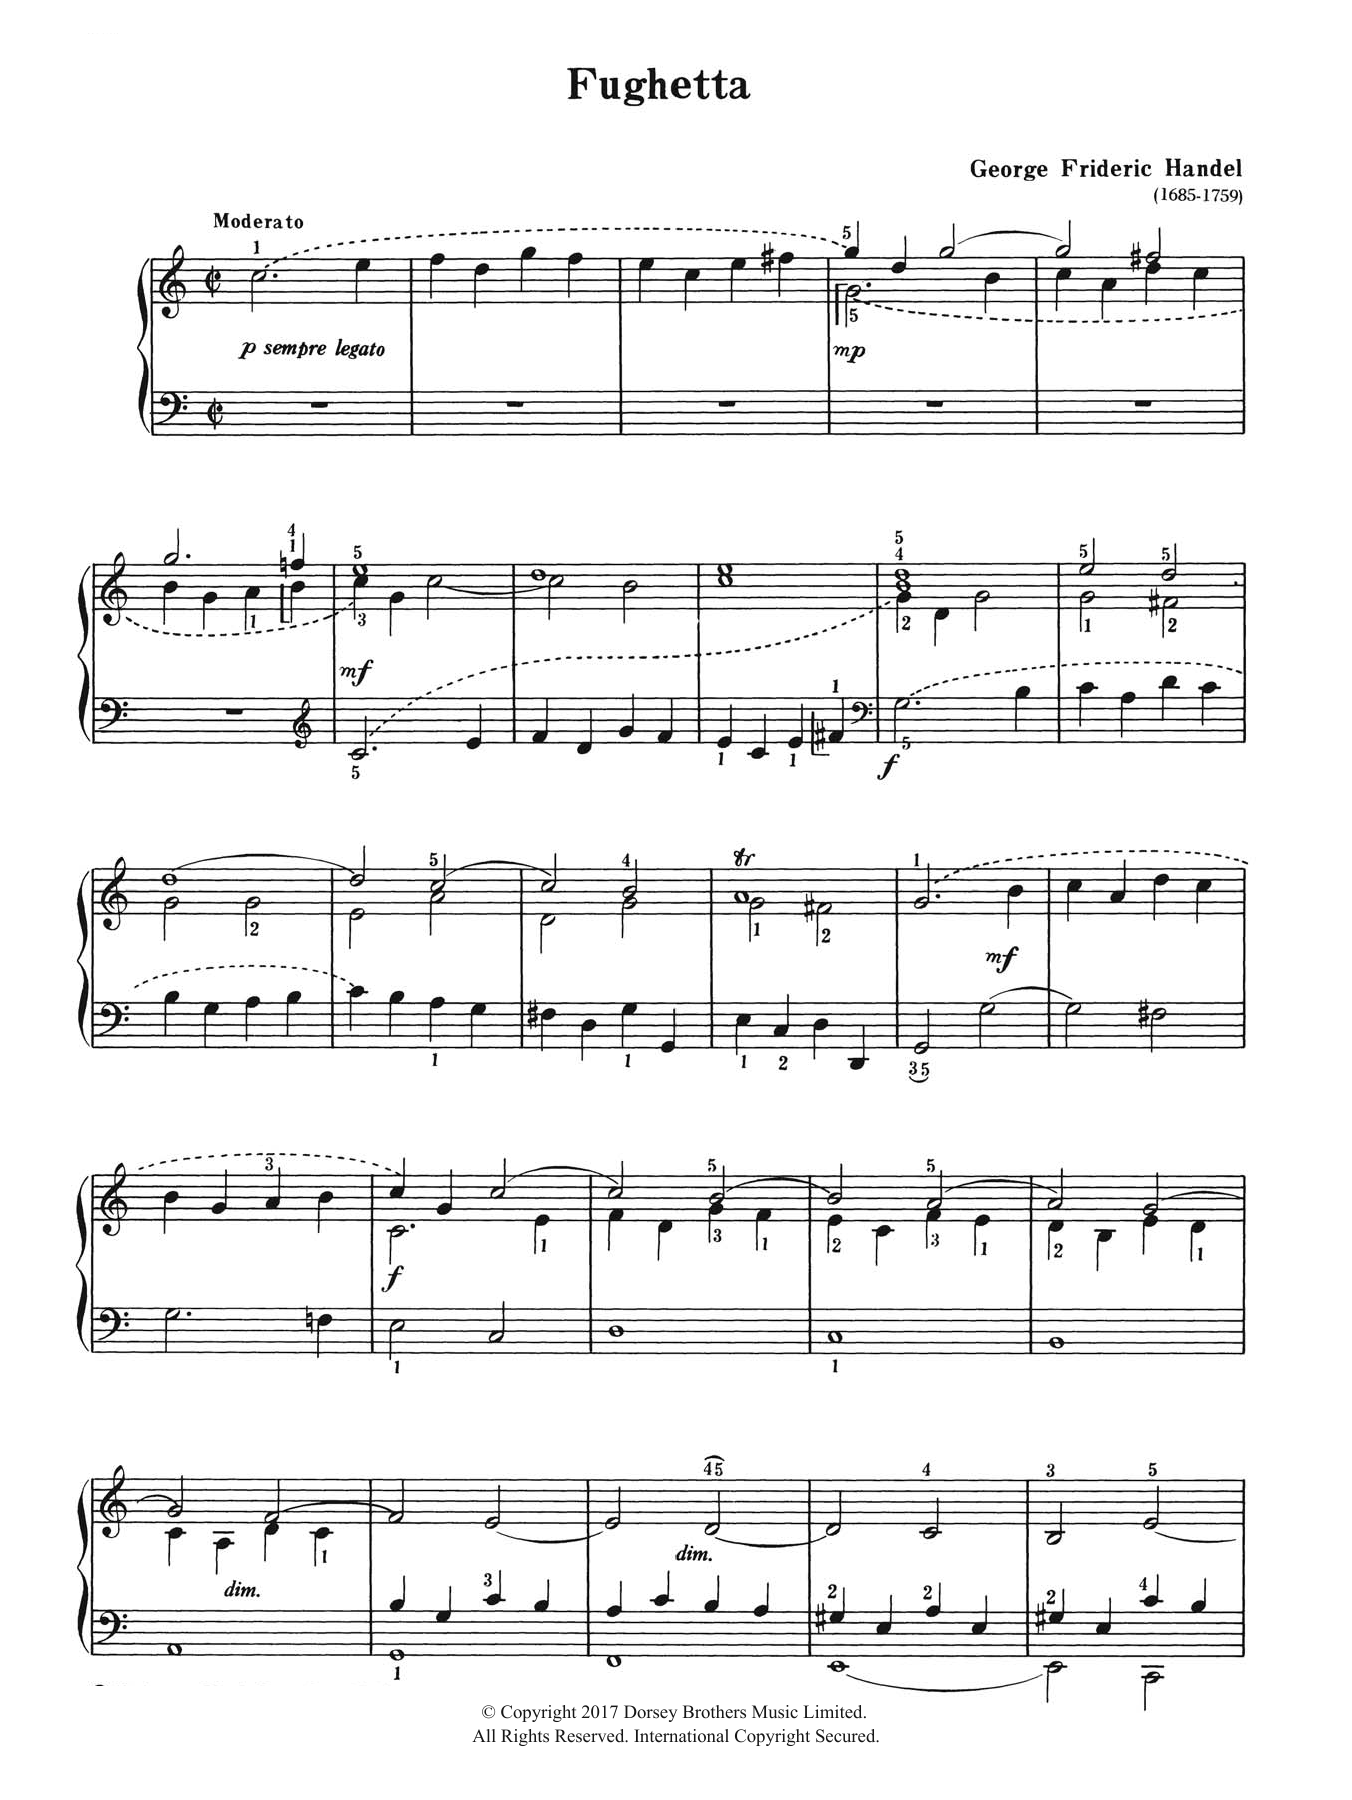 Fughetta Sheet Music